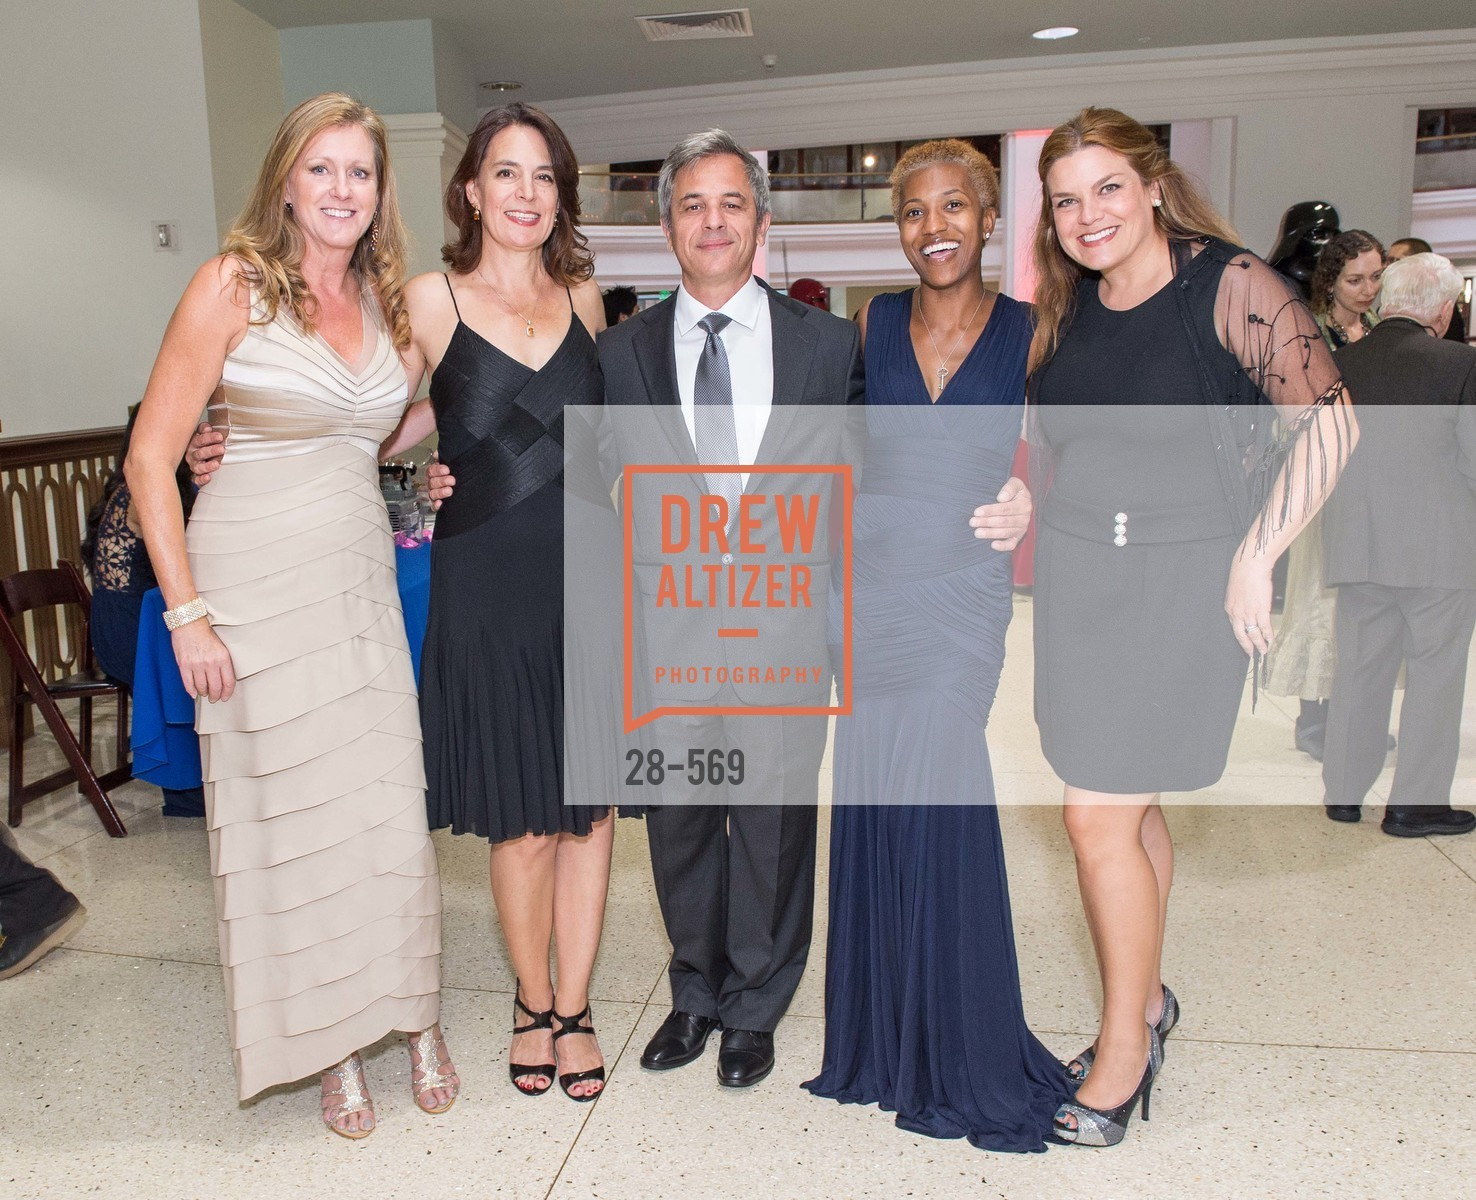 Melissa Russo, Mimi Rohr, Freidrich Neema, Autumn King, Jill Broadhurst, CHABOT Science Center STARLIGHT GALA, US, September 20th, 2014,Drew Altizer, Drew Altizer Photography, full-service agency, private events, San Francisco photographer, photographer california